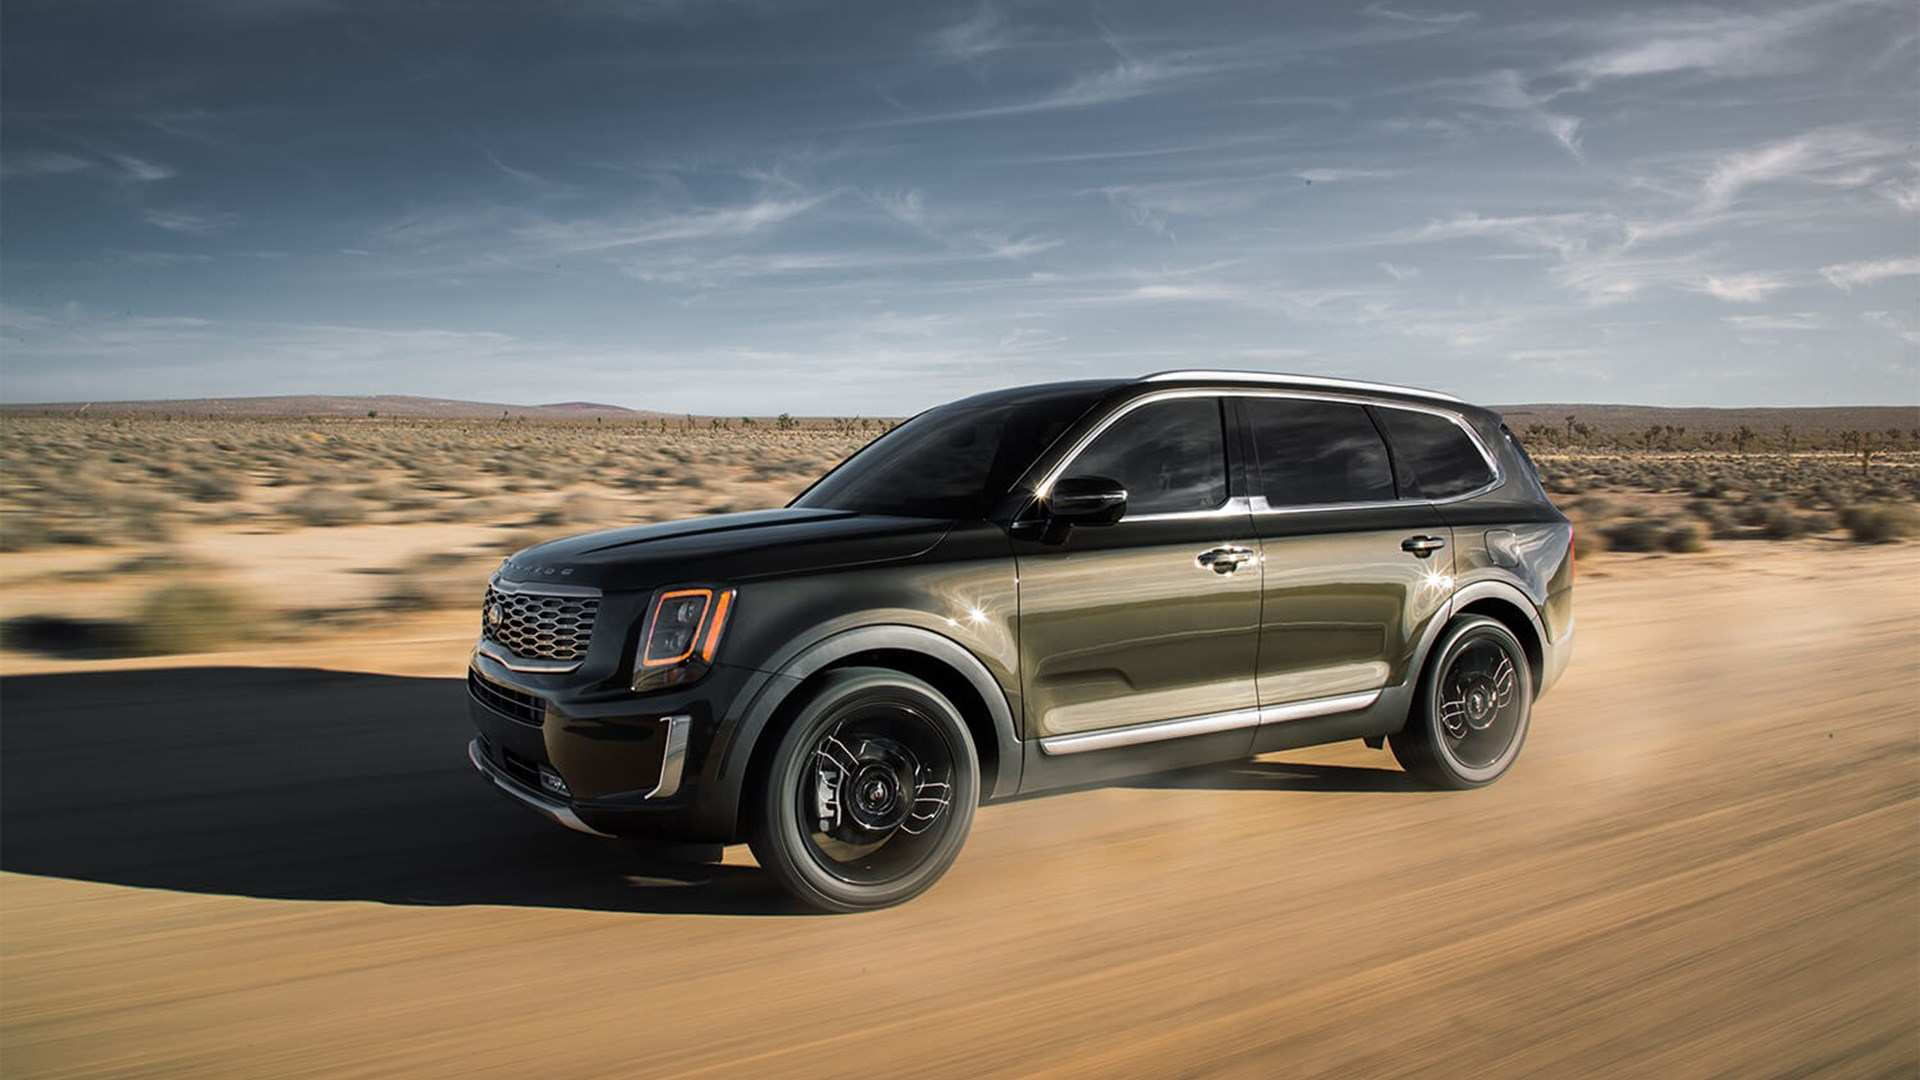 83 All New How Much Is The 2020 Kia Telluride Redesign and Concept by How Much Is The 2020 Kia Telluride